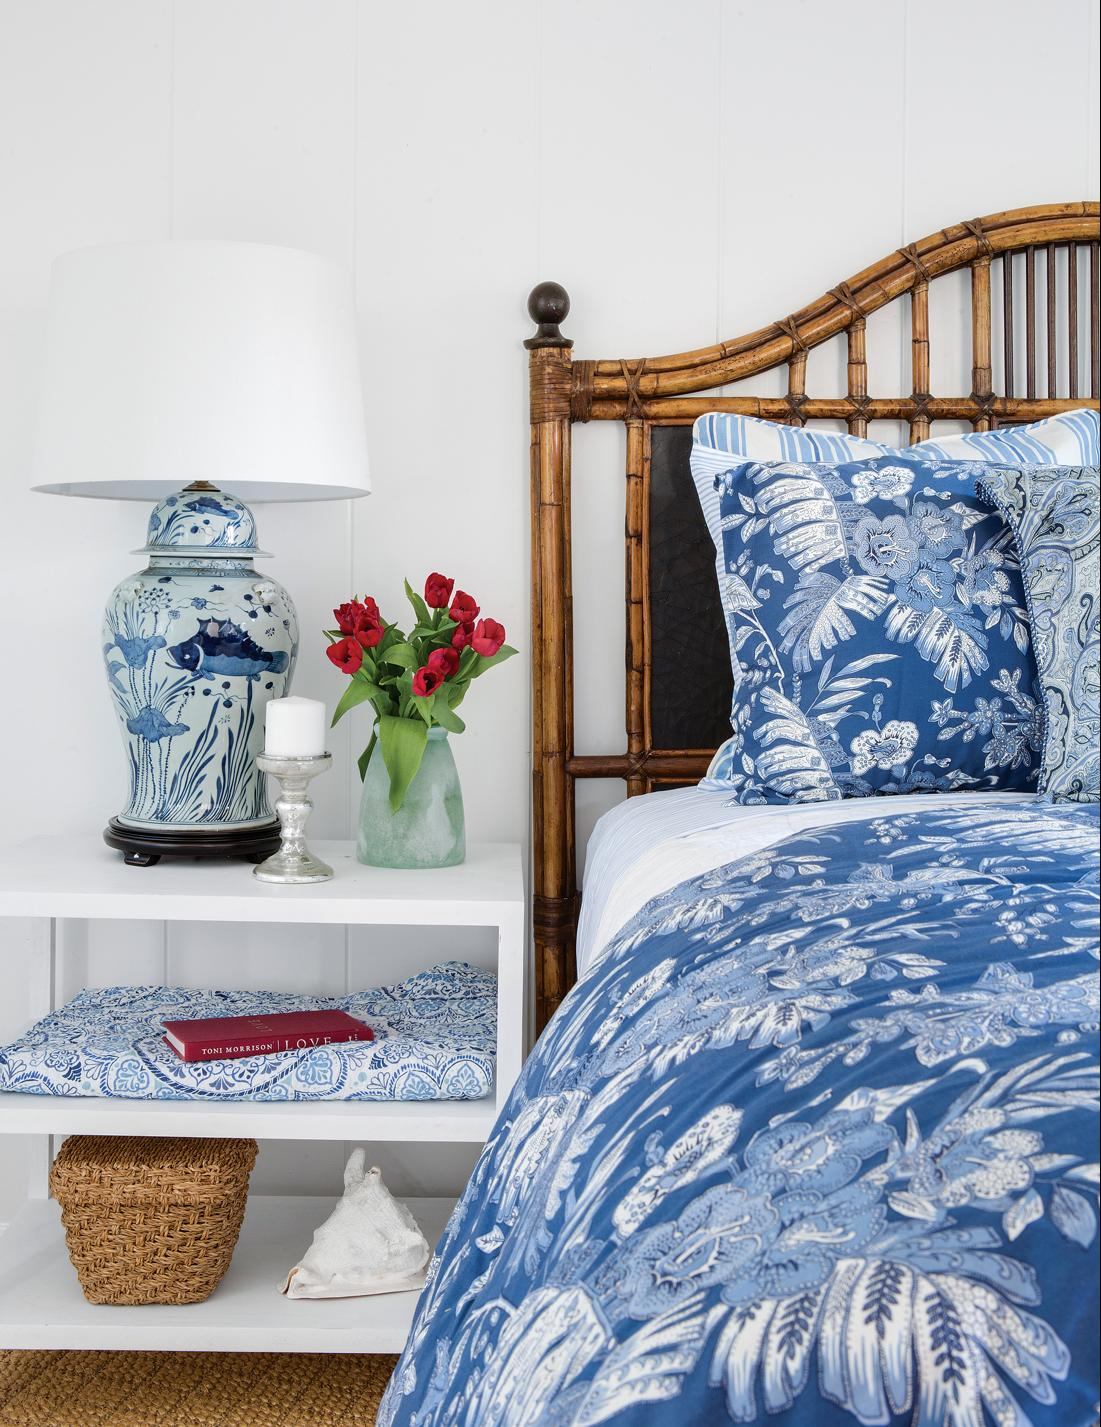 Bedroom with rattan headboard and blue and white accents on the bed and on the nightstand.